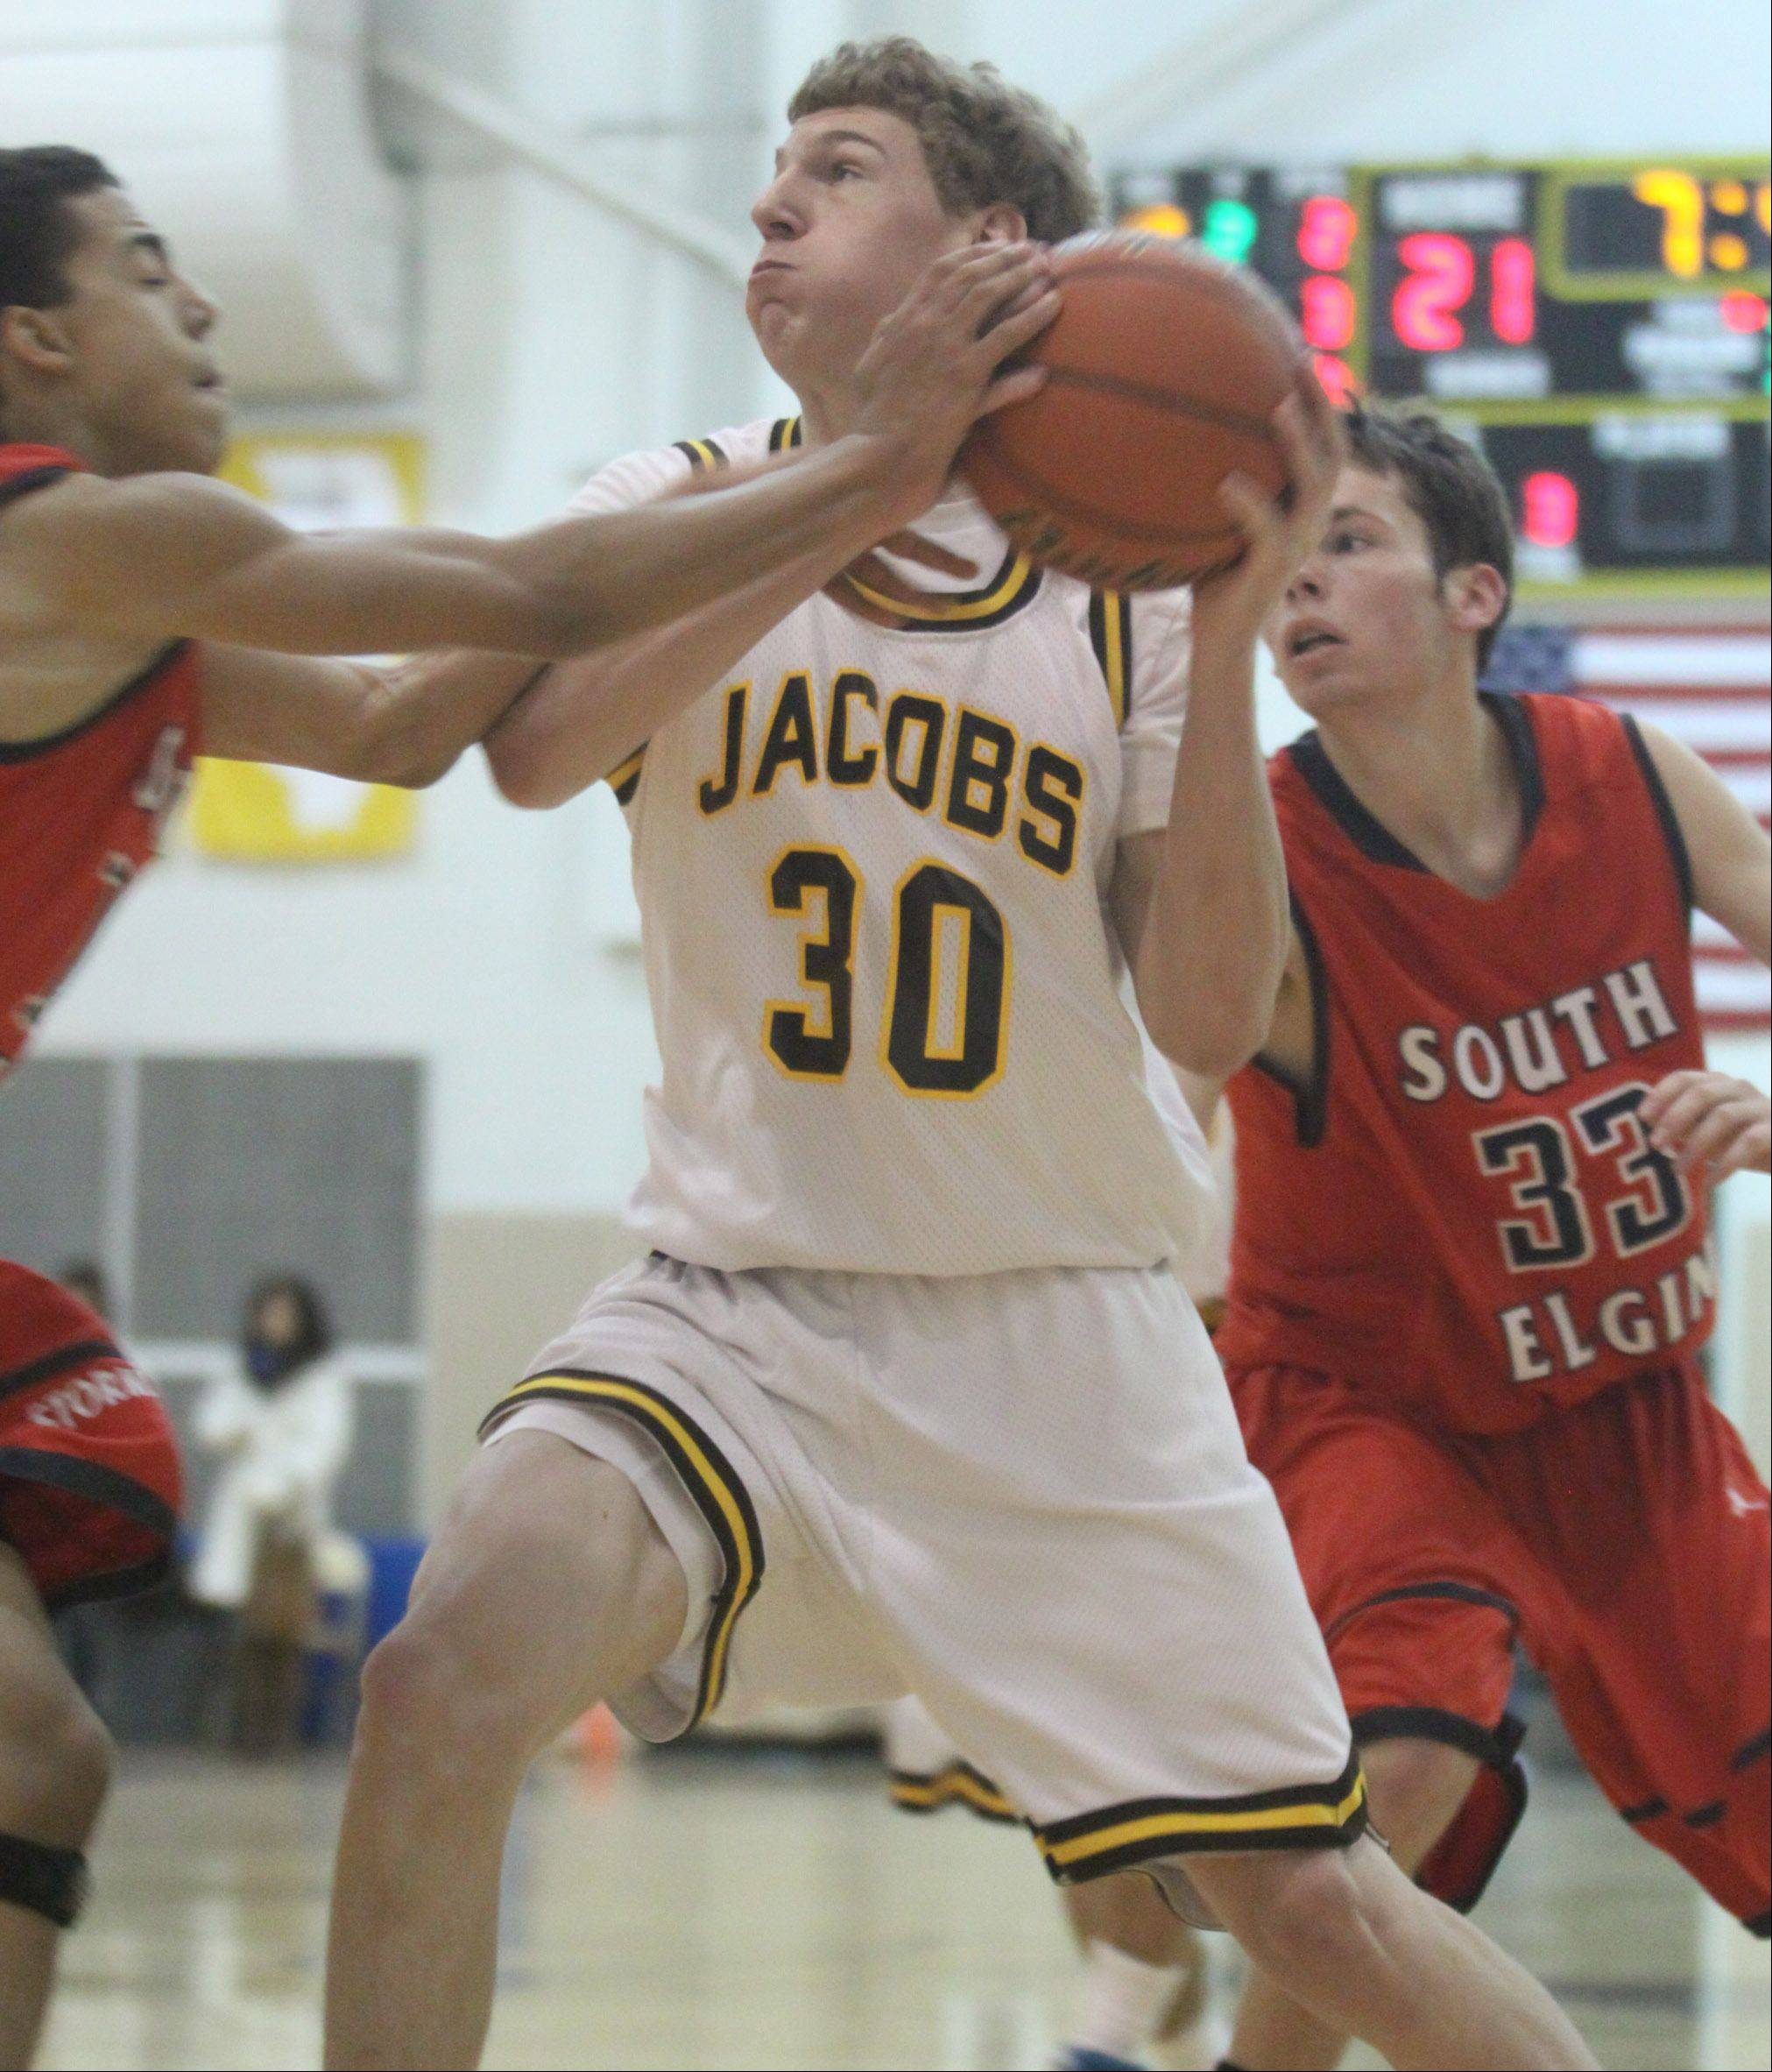 Jacobs' Will Schwerdtmann, center, brings the ball to the hoop against South Elgin's Darius Wells, left, and Eric Stazy, right, during a varsity basketball game in Algonquin on Thursday night. Jacobs hosts its annual Christmas tournament beginning Saturday, while South Elgin plays at York's Jack Tosh tournament Dec. 27-30.